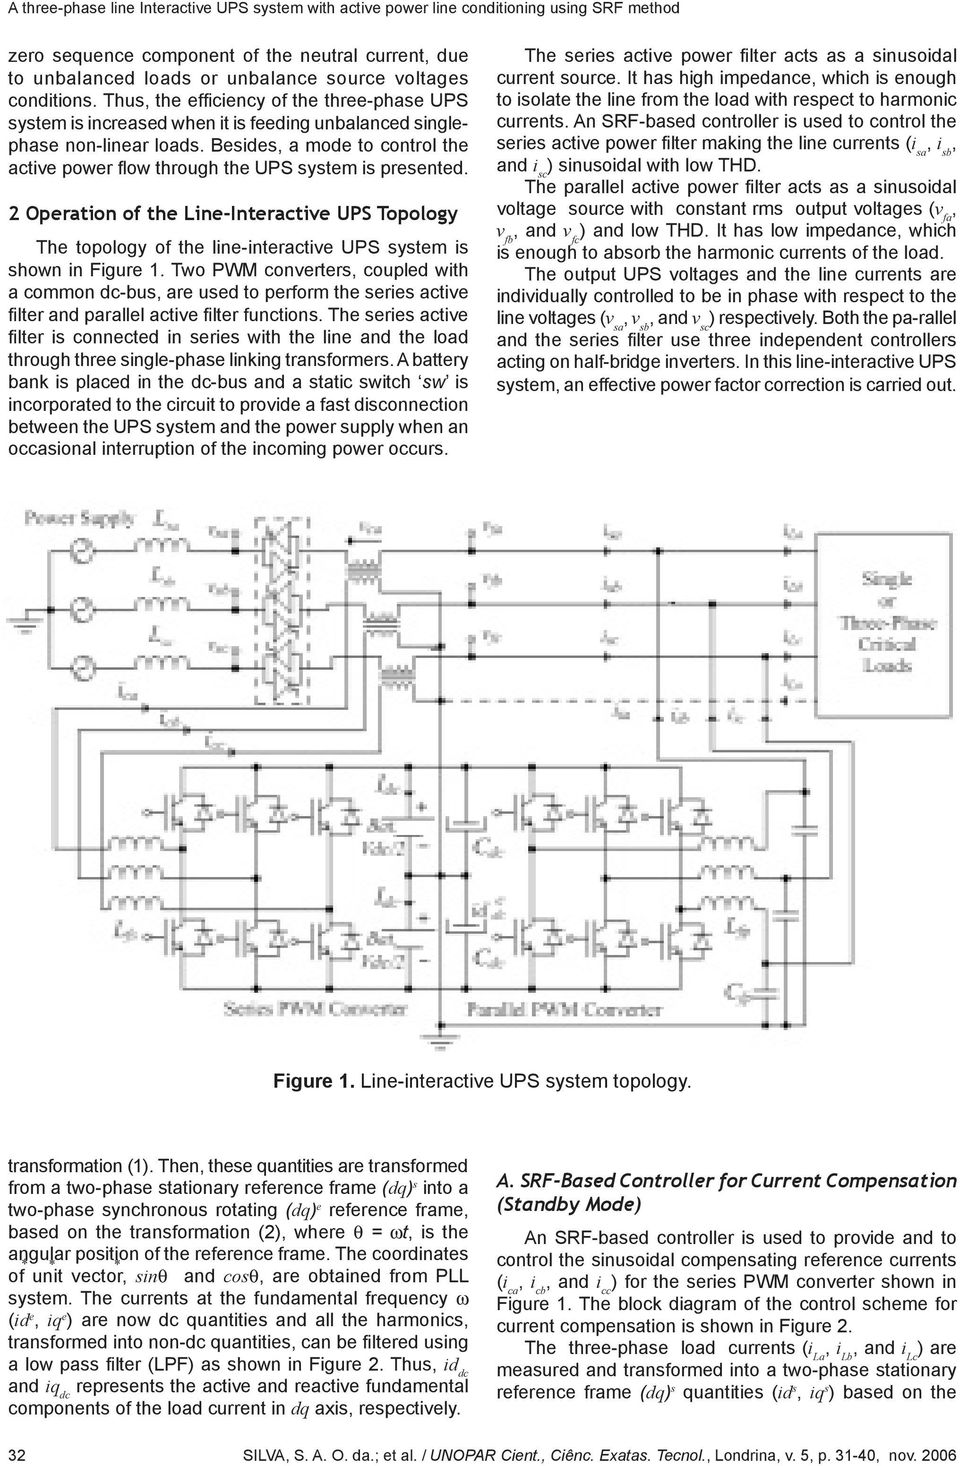 A Three-Phase Line Interactive UPS system with active power